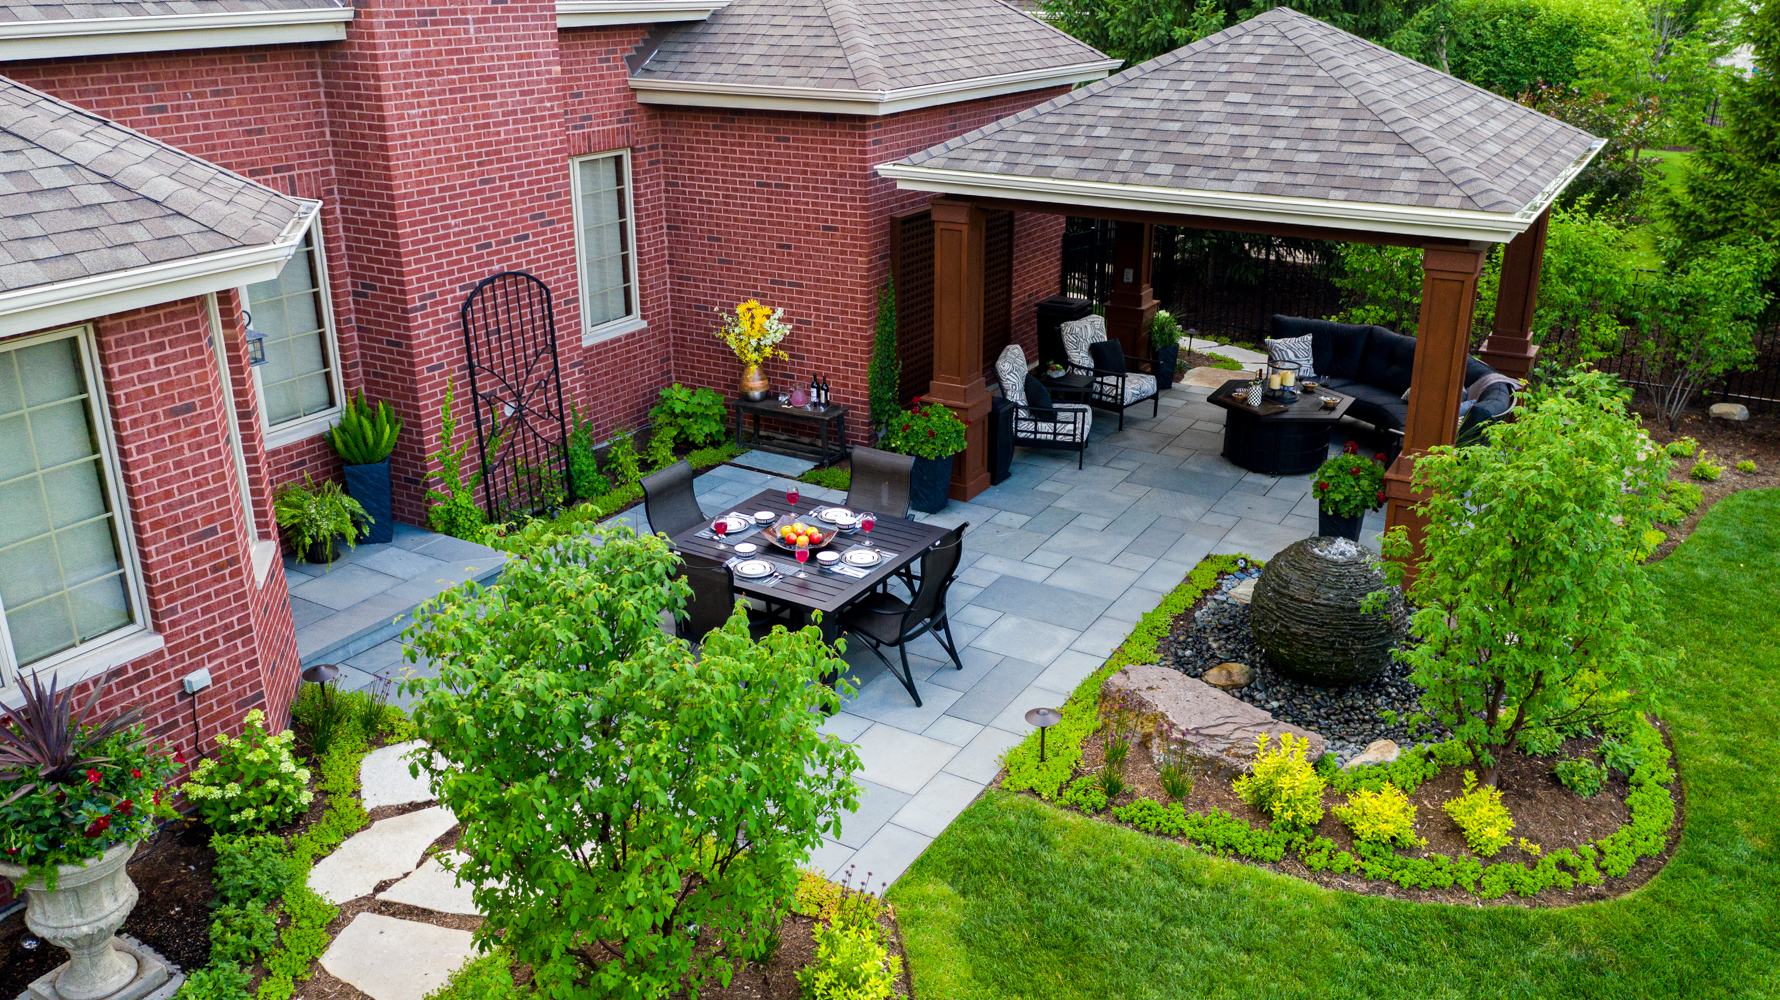 Backyard patio and pavilion for entertaining